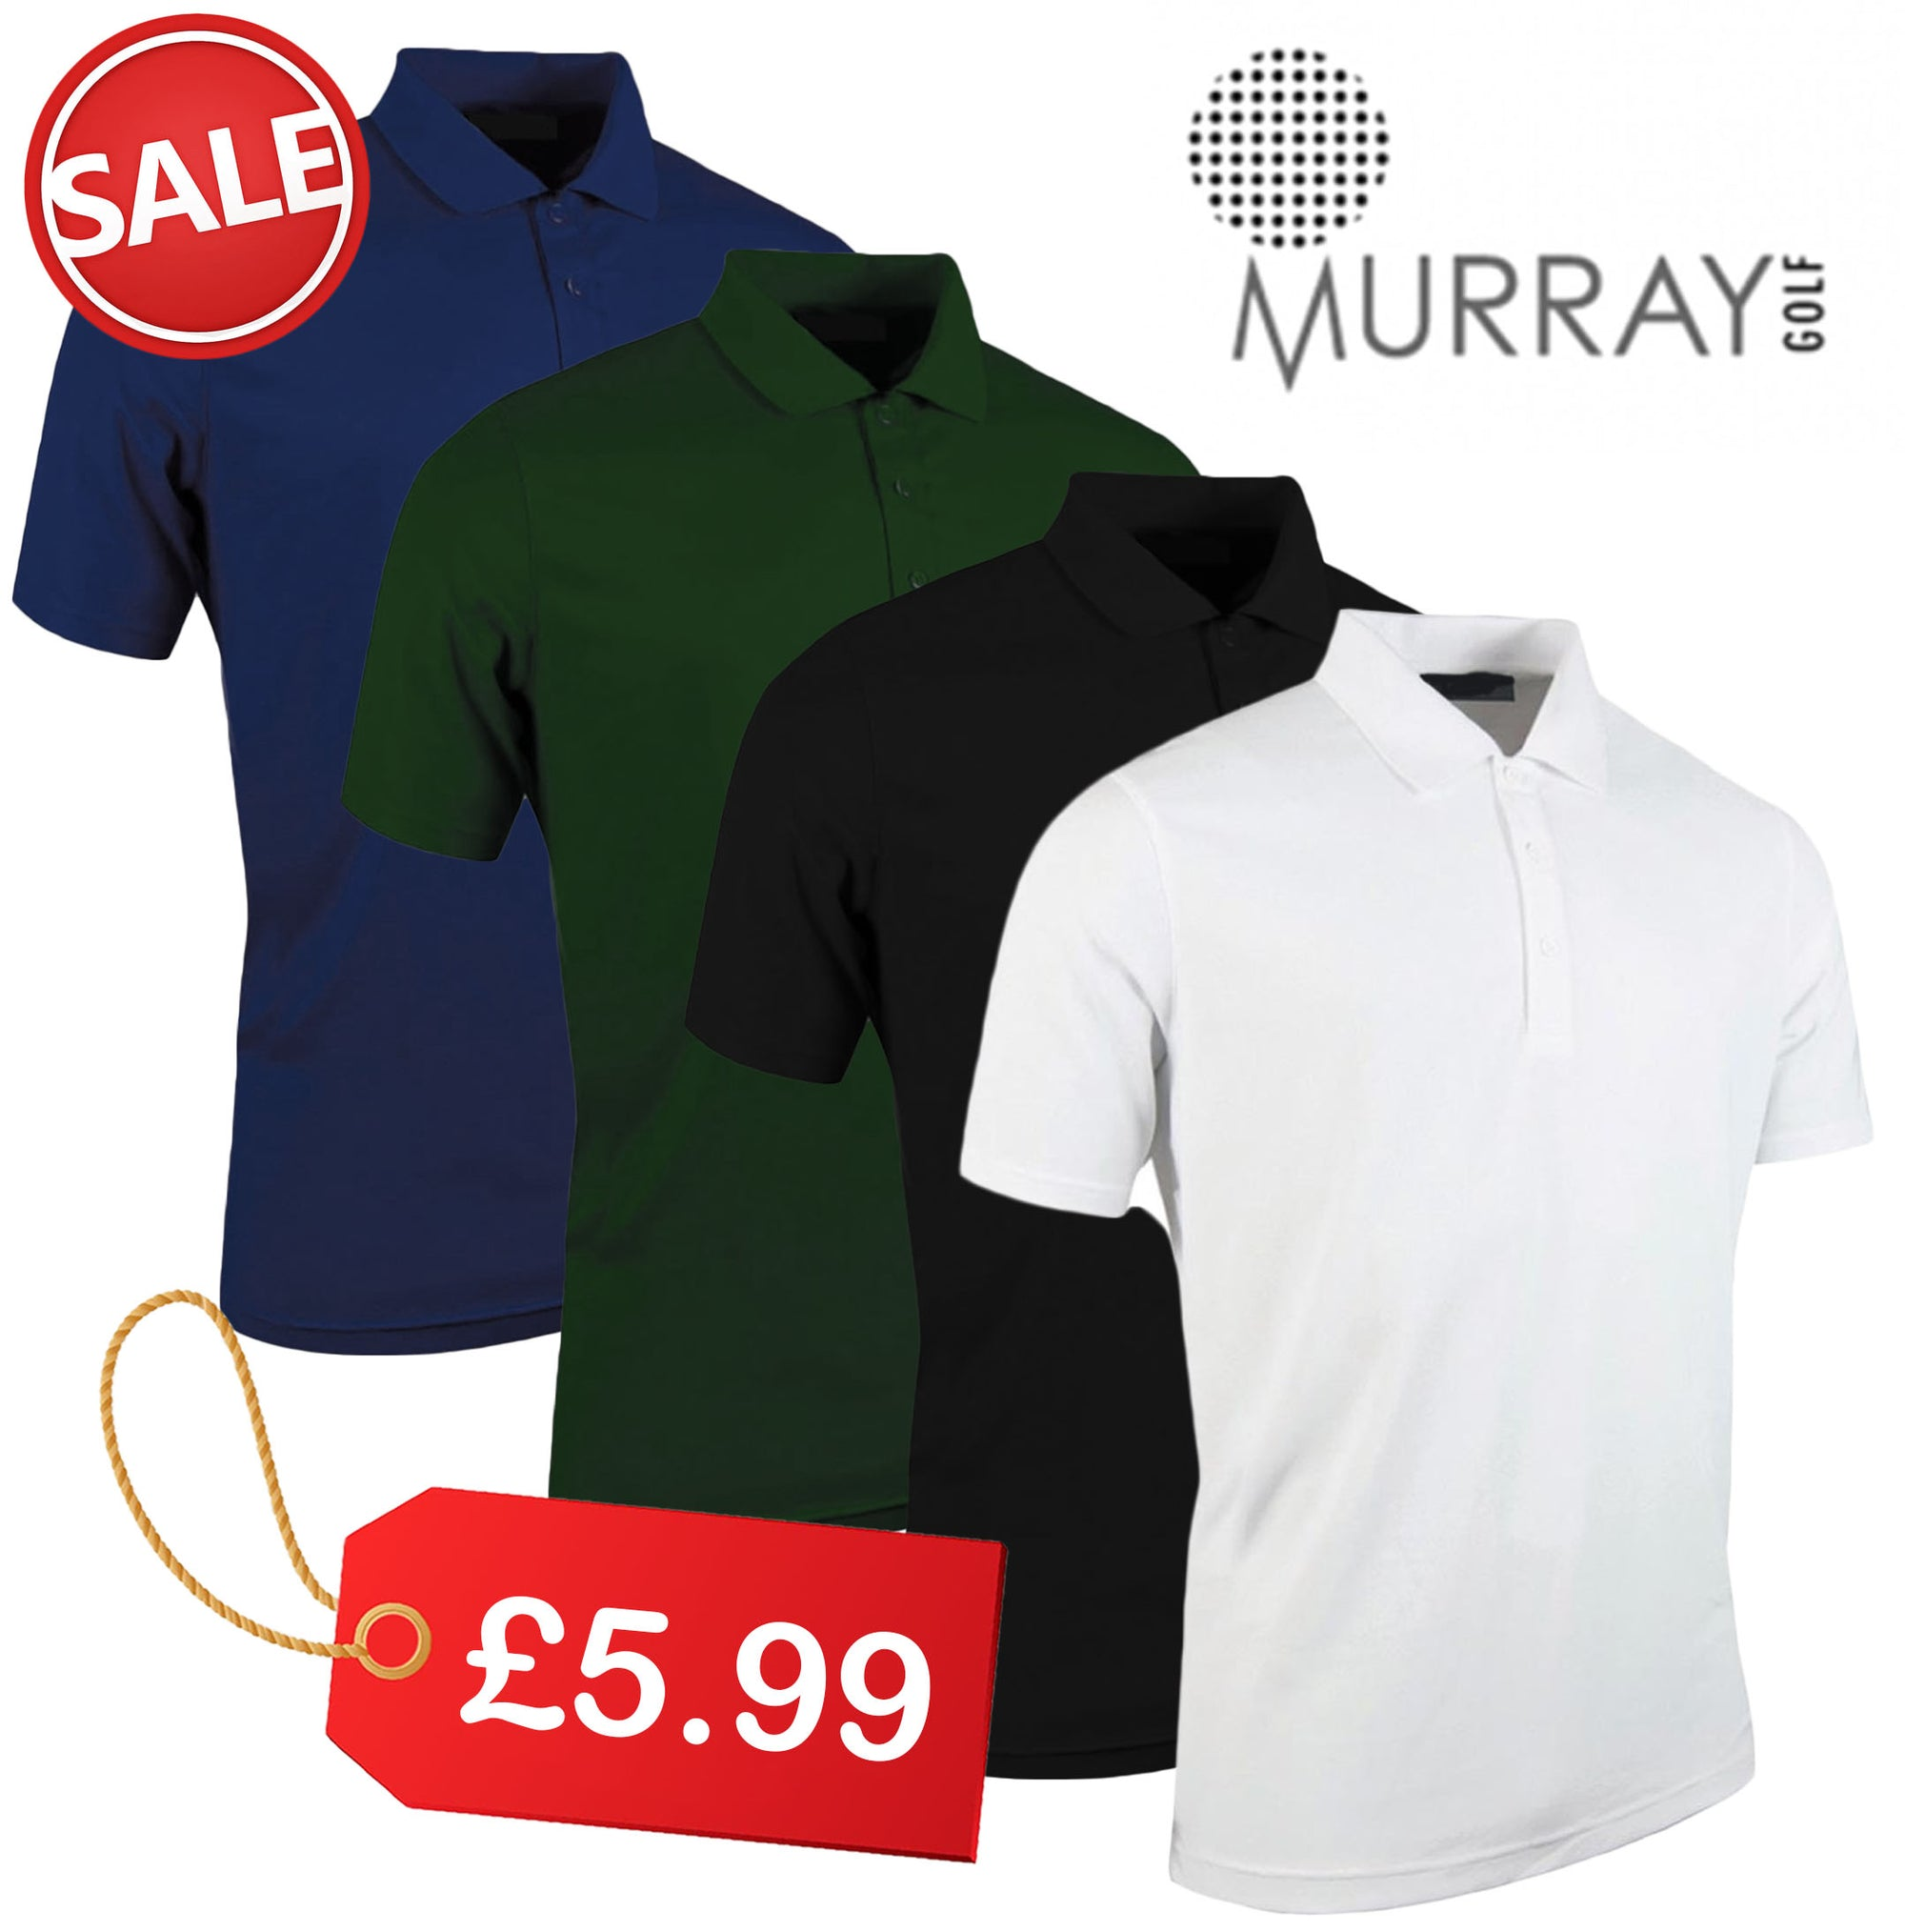 New Murray Golf Tour Ace Dri Tech Polo Shirt